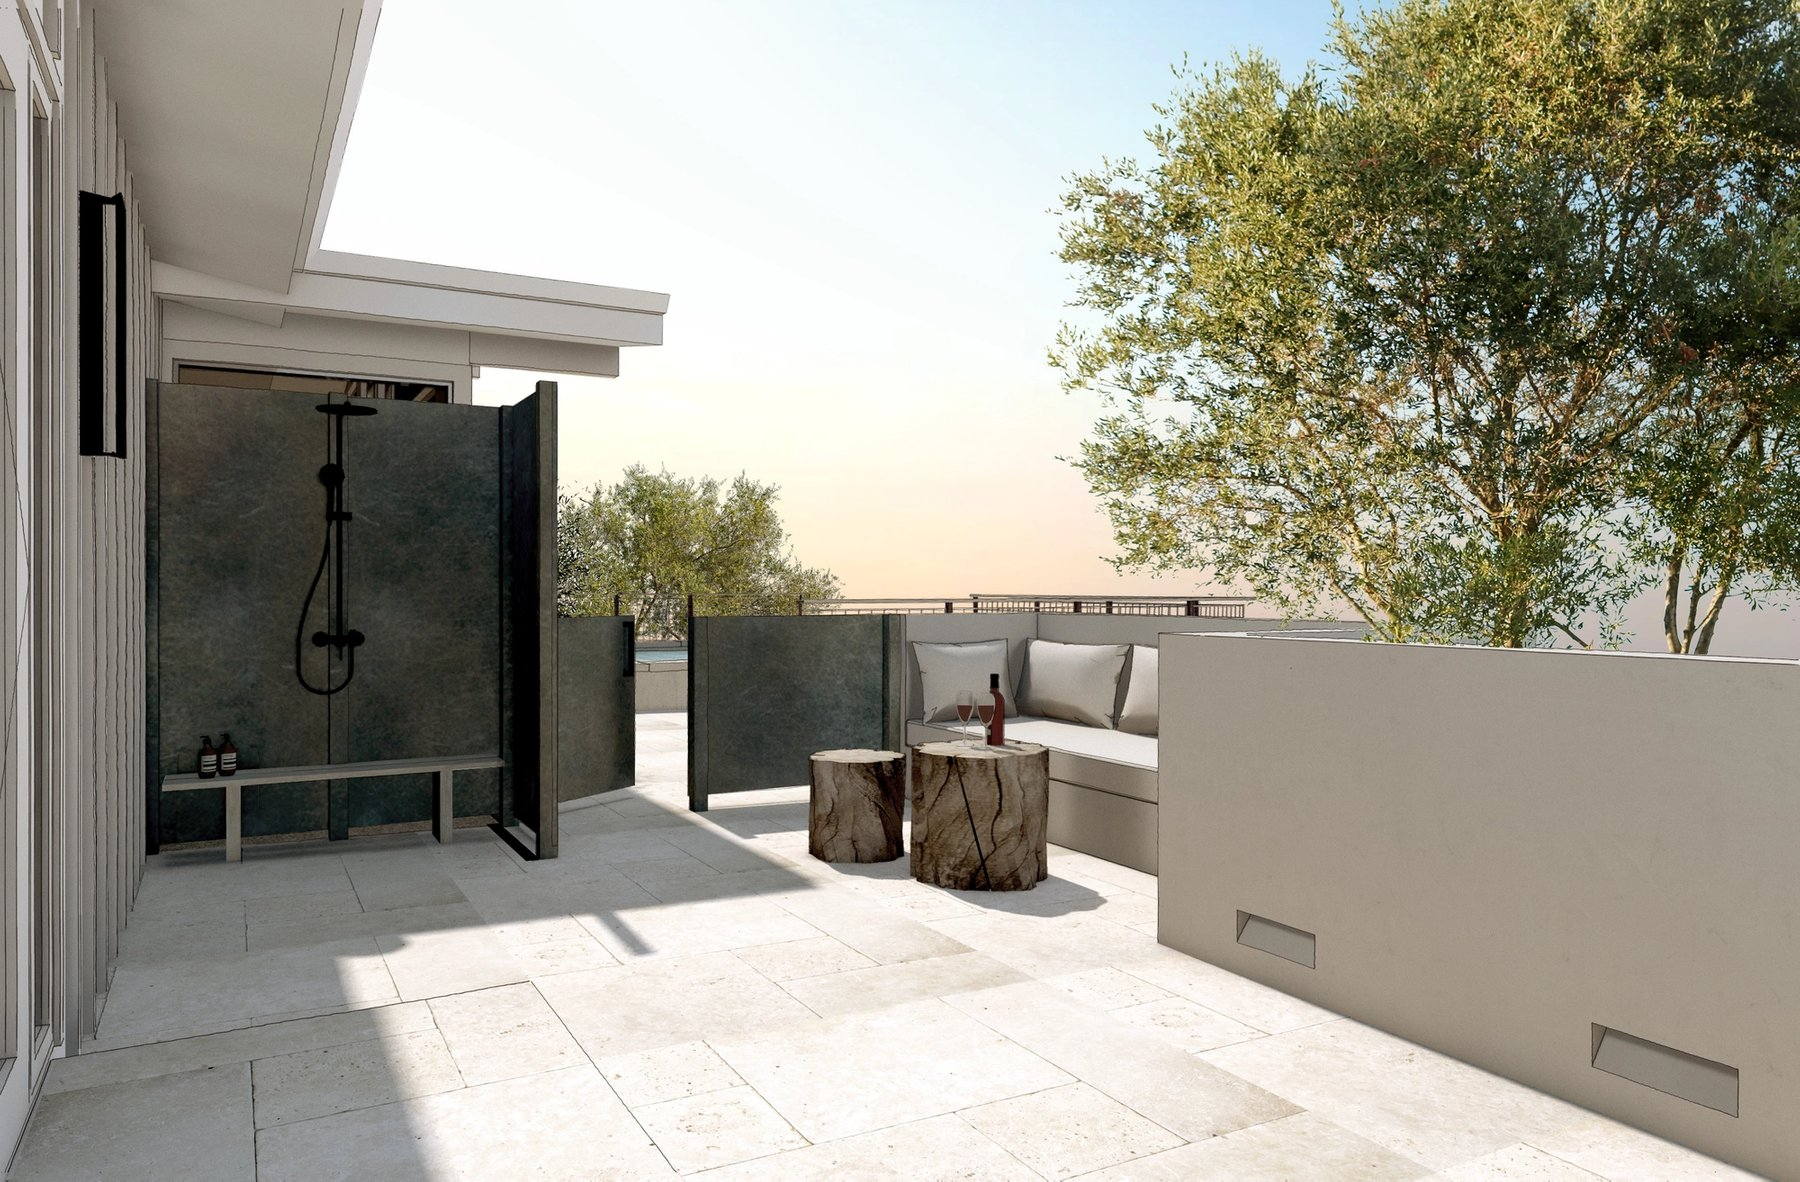 Private master patio with outdoor shower